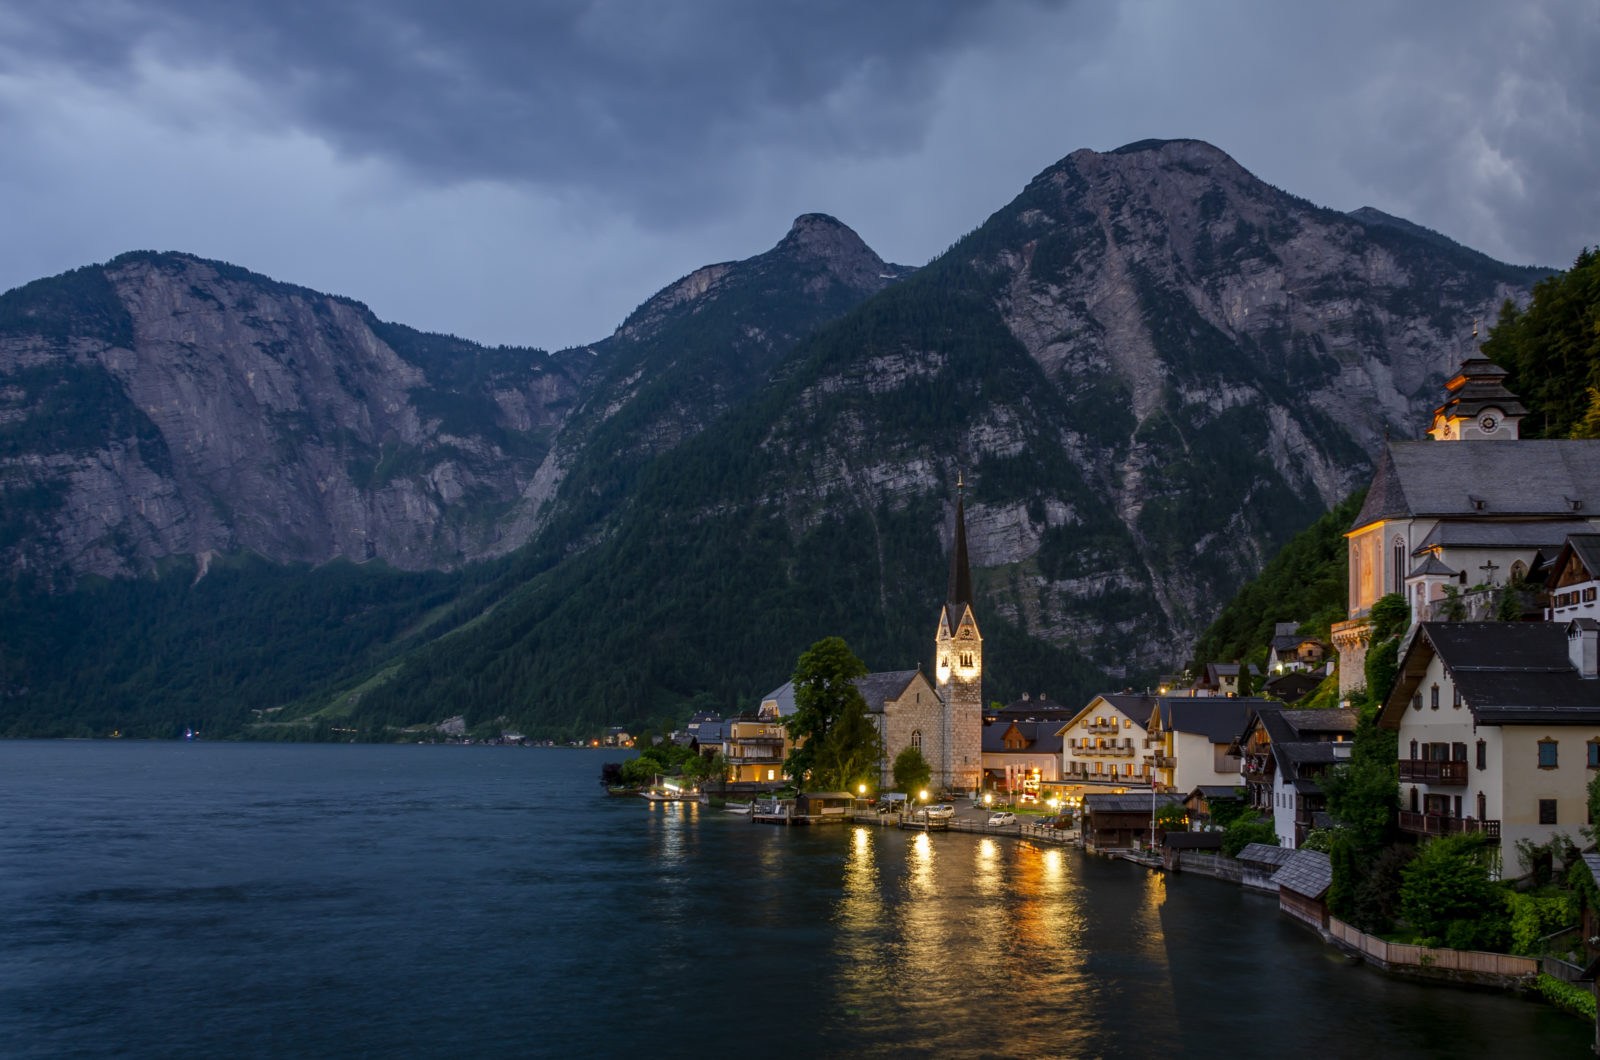 Twilight in Hallstatt